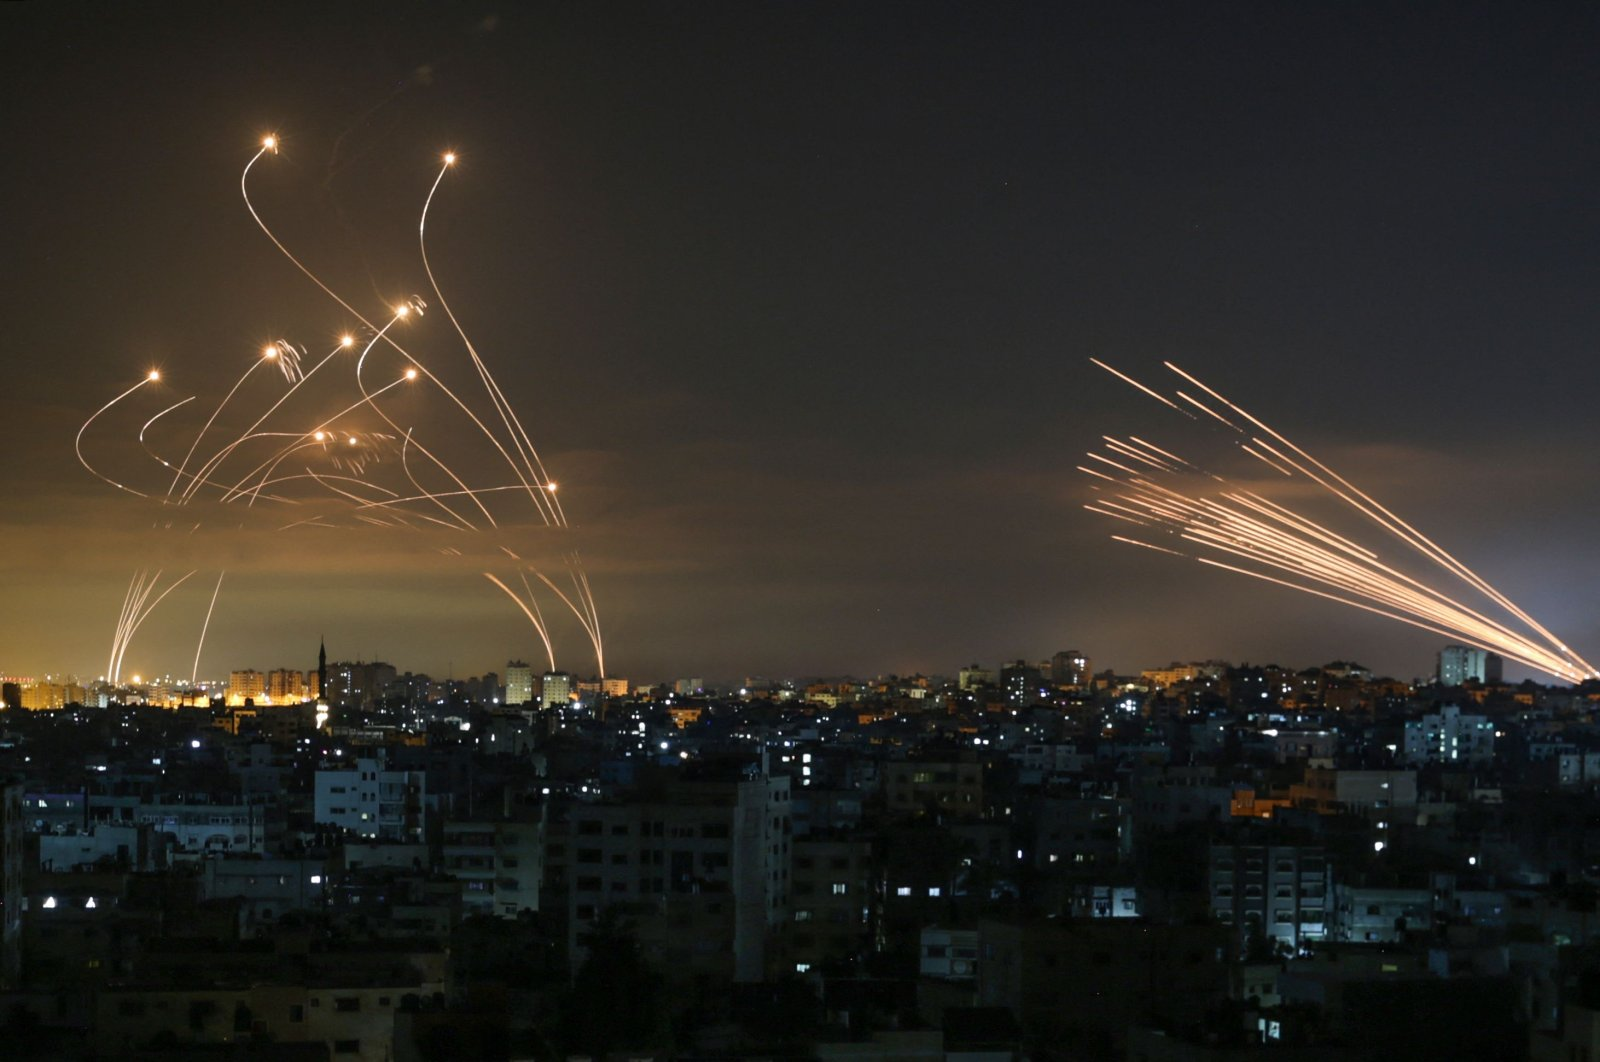 The Israeli Iron Dome missile defence system (L) intercepts rockets (R) fired by the Hamas towards southern Israel from Beit Lahia in the northern Gaza Strip as seen in the sky above the Gaza Strip overnight on May 14, 2021. (AFP Photo)